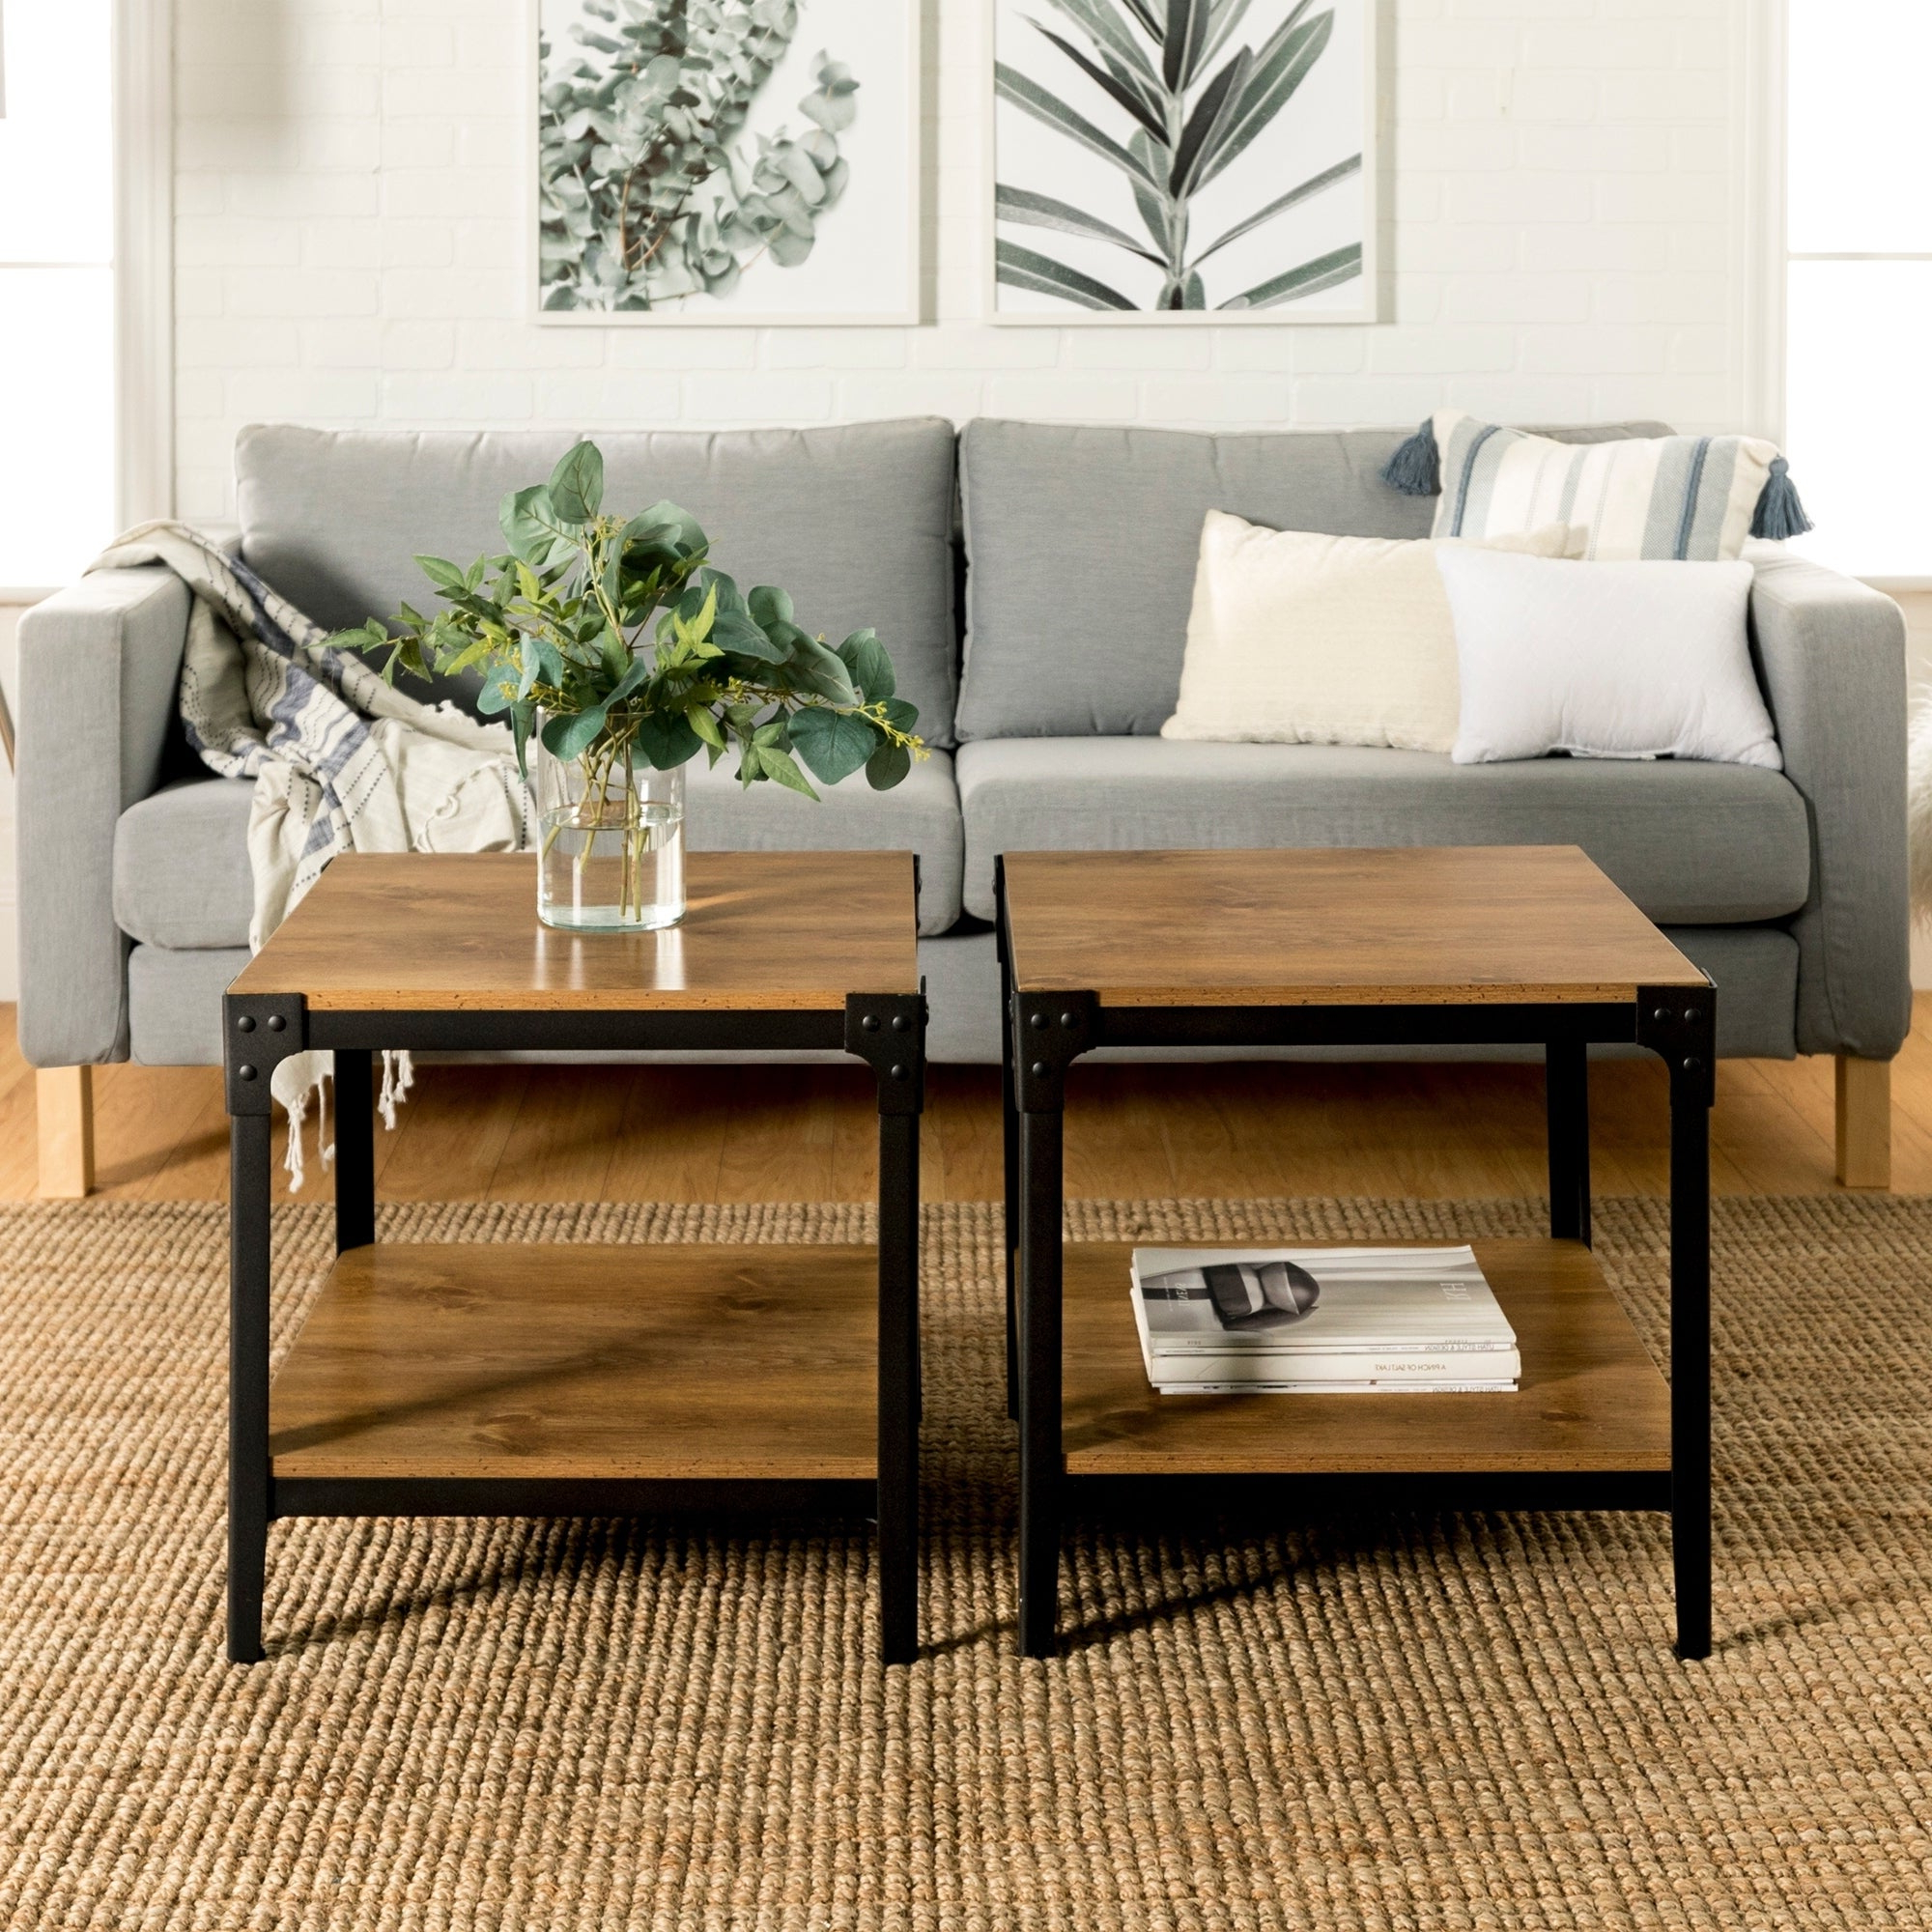 """Well Liked Carbon Loft Witten Angle Iron And Driftwood Coffee Tables With Carbon Loft Witten 20"""" Square Angle Iron End Table, Set Of 2 – 20 X 20 X 20H (View 20 of 20)"""